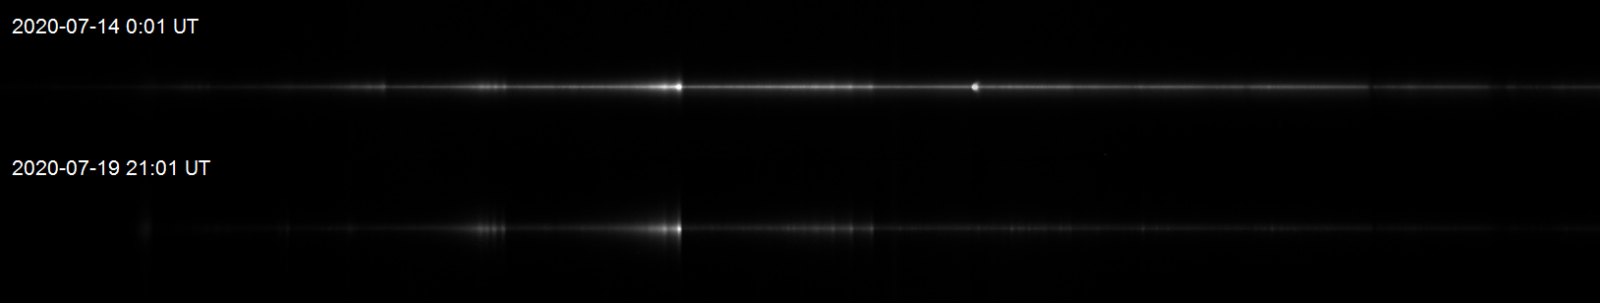 Neowise_spectra.thumb.png.fe5aaf998e27a9c1e45f2d3f5ff4832f.png